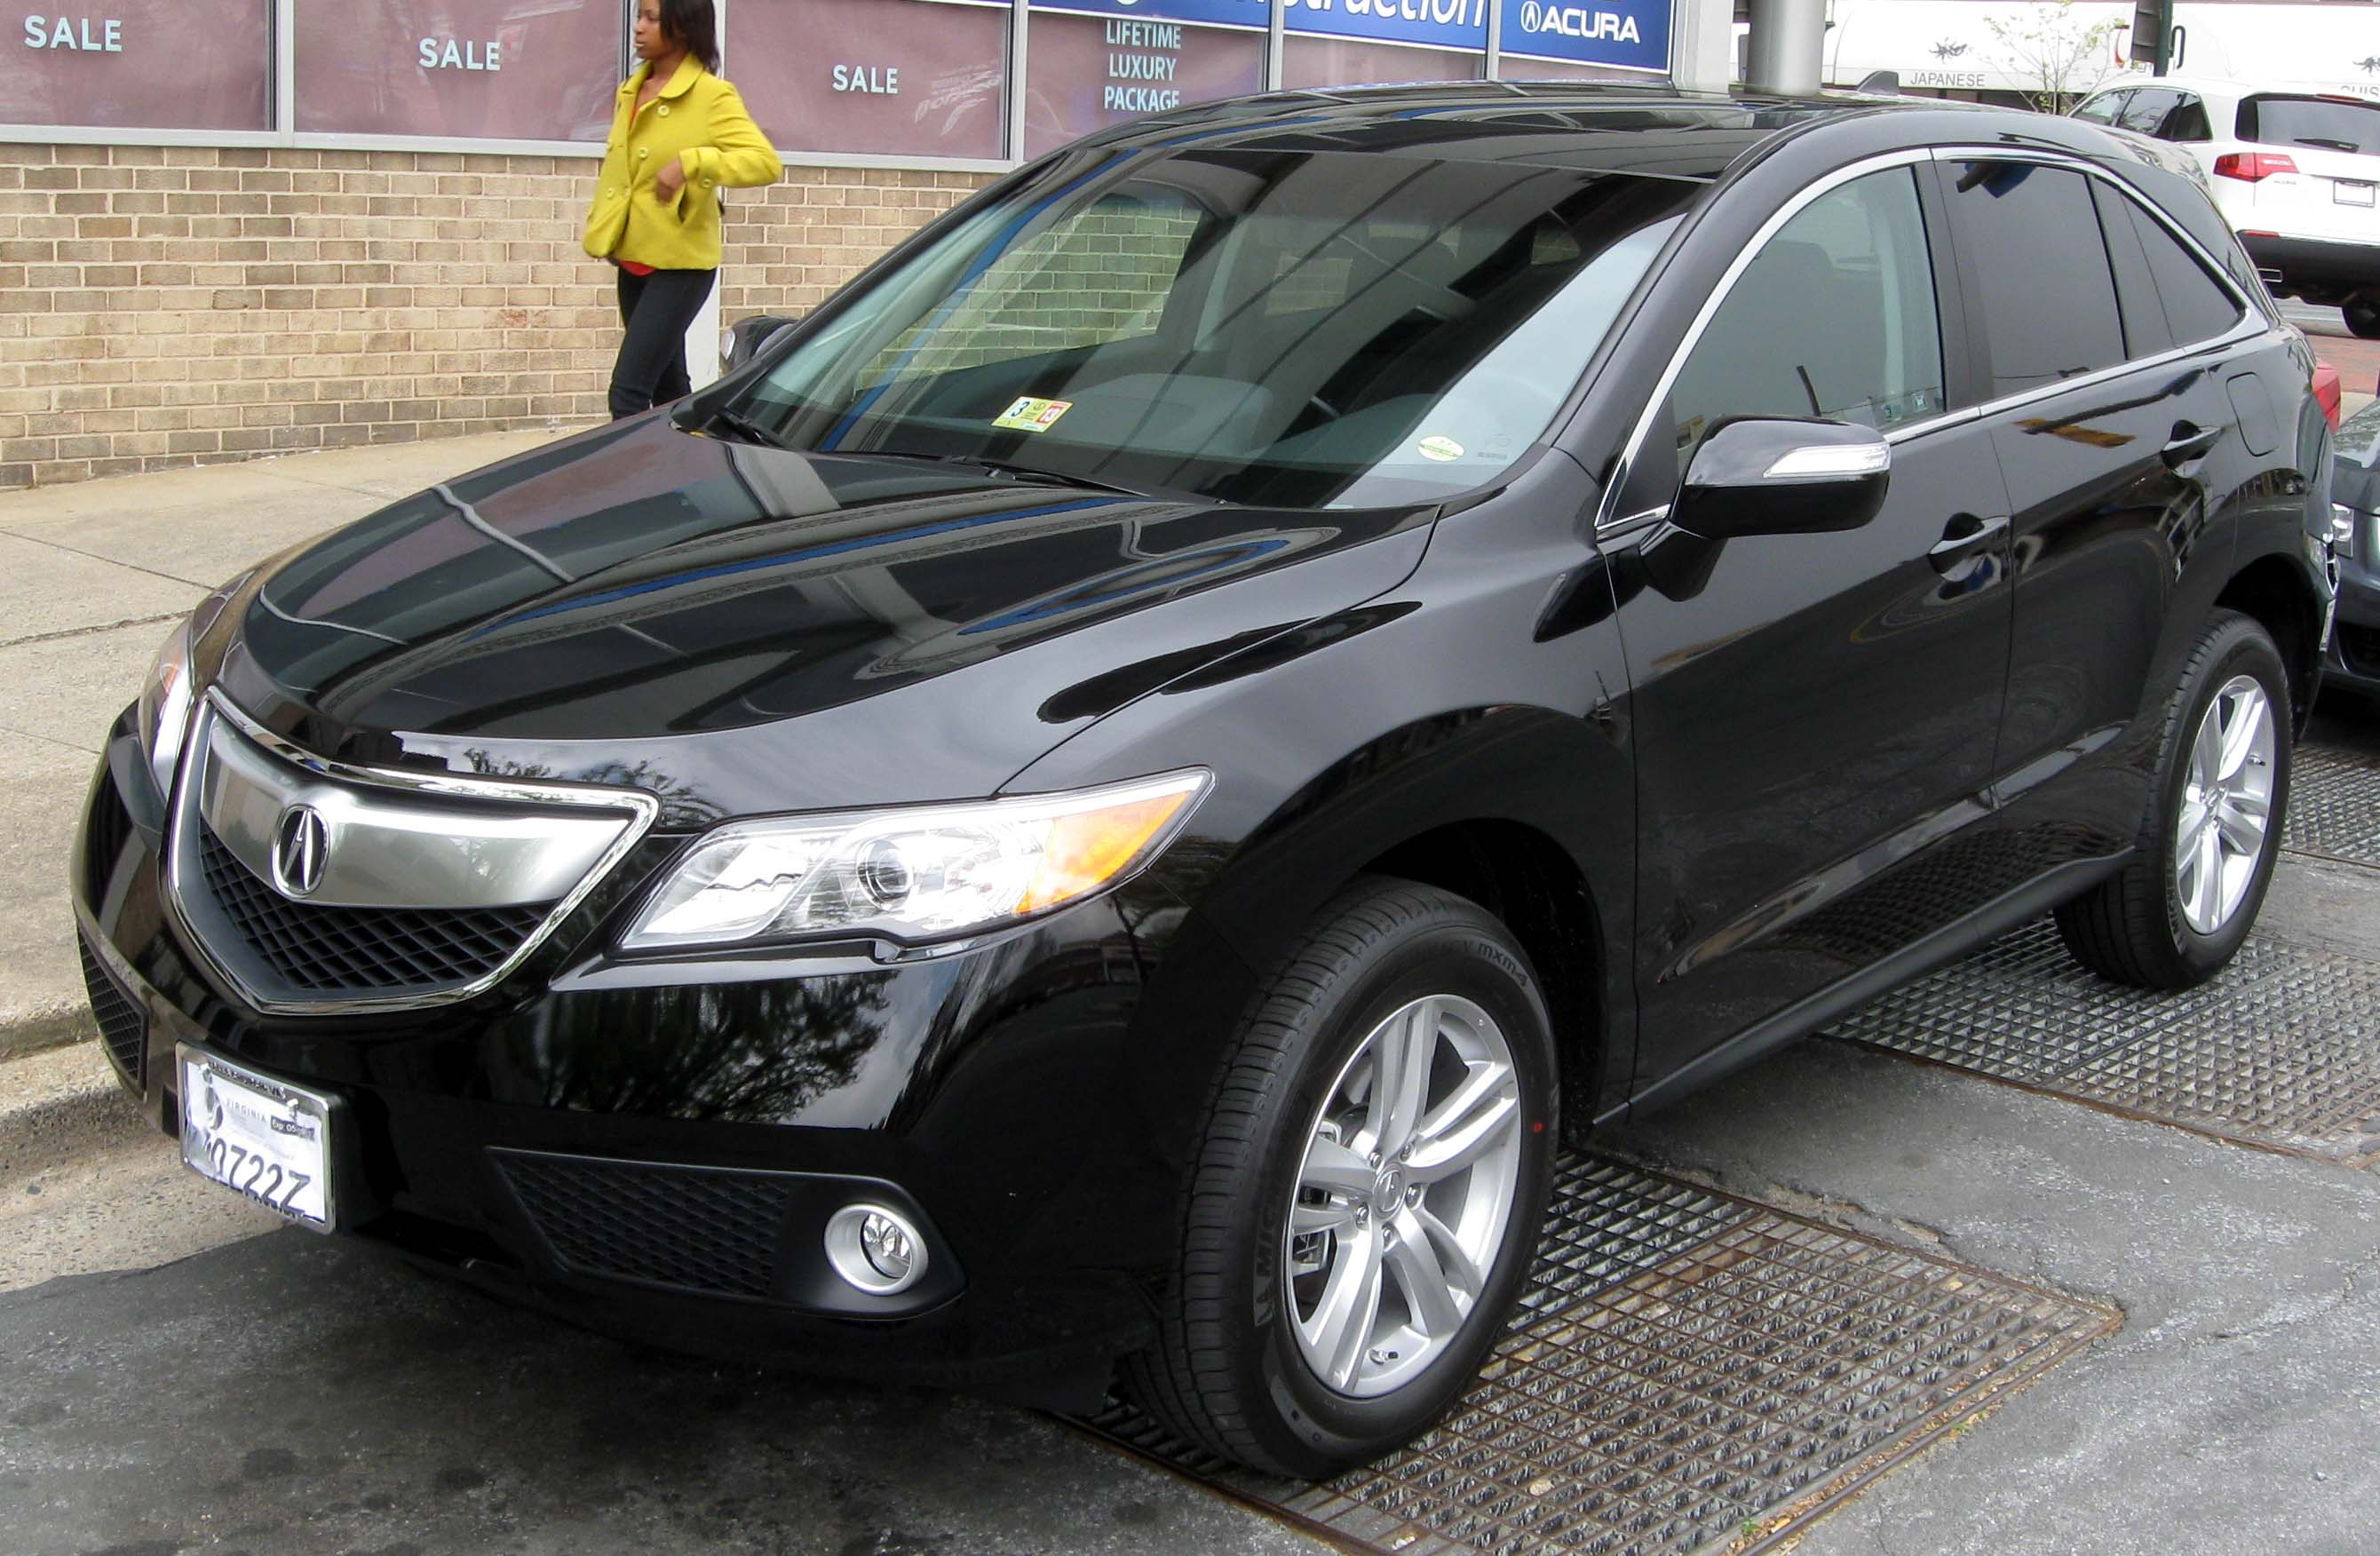 right beautiful awd for rdx of sale wikimedia here click rear acura mons file